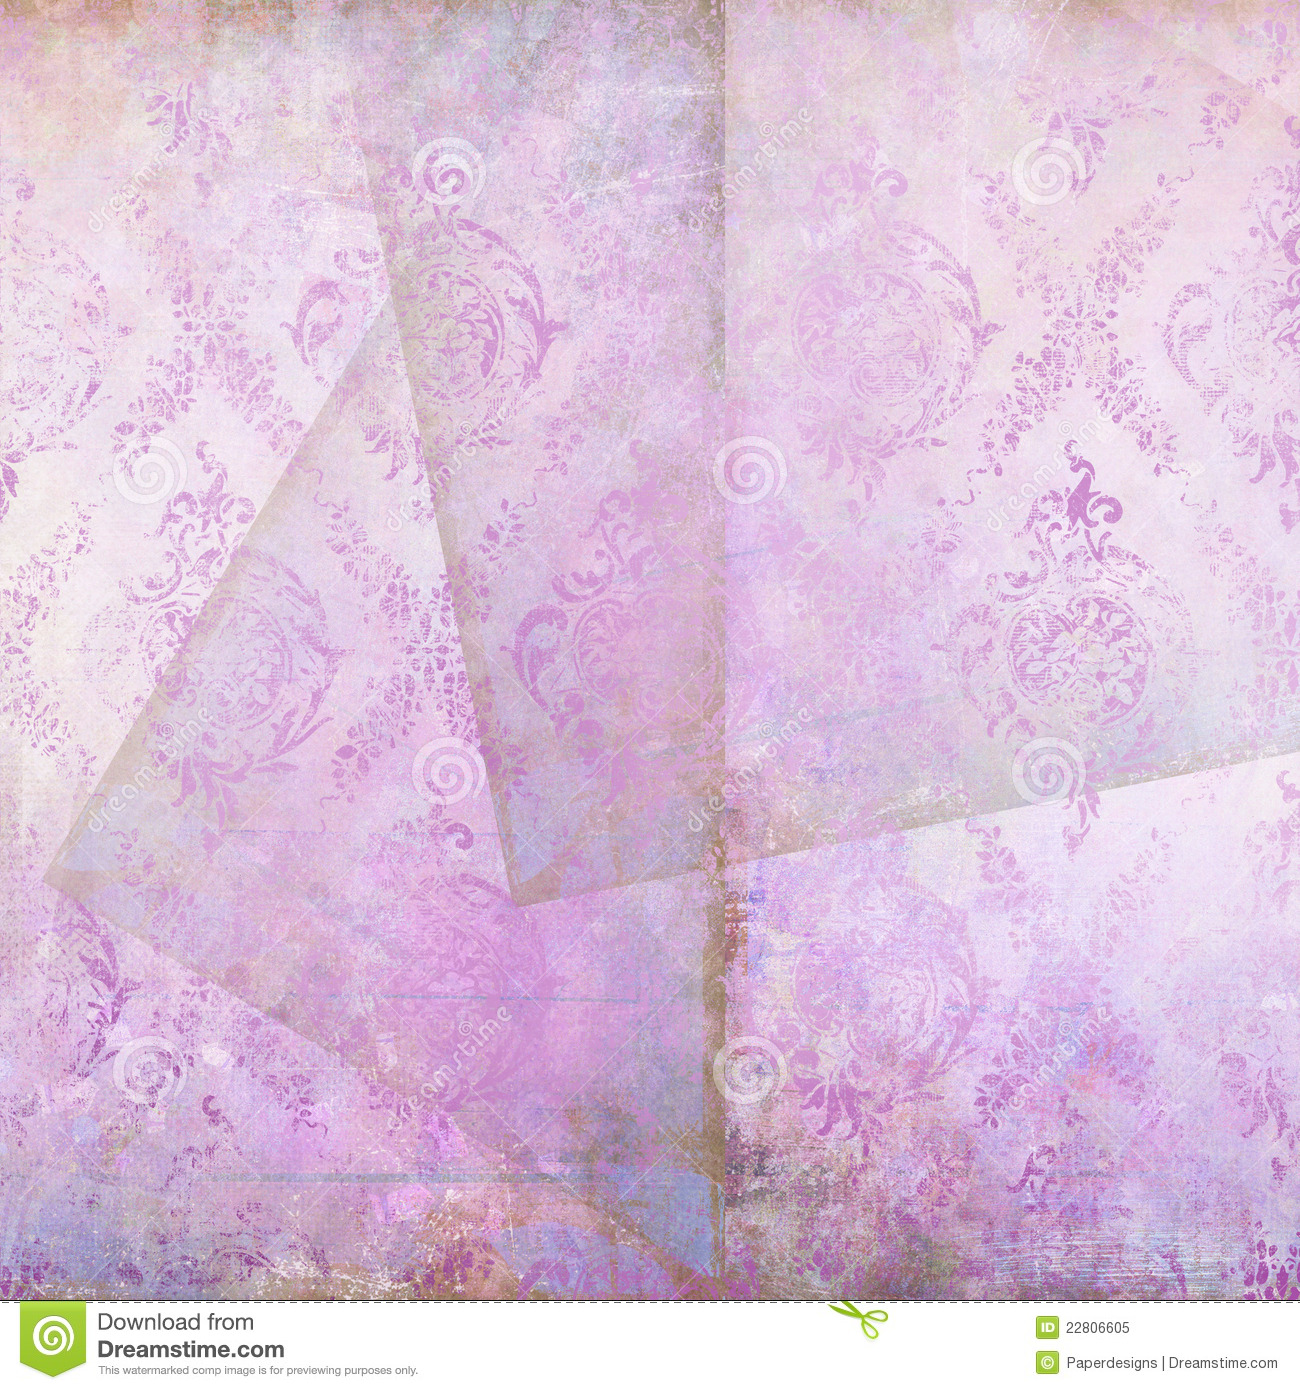 lavender vintage background - photo #7